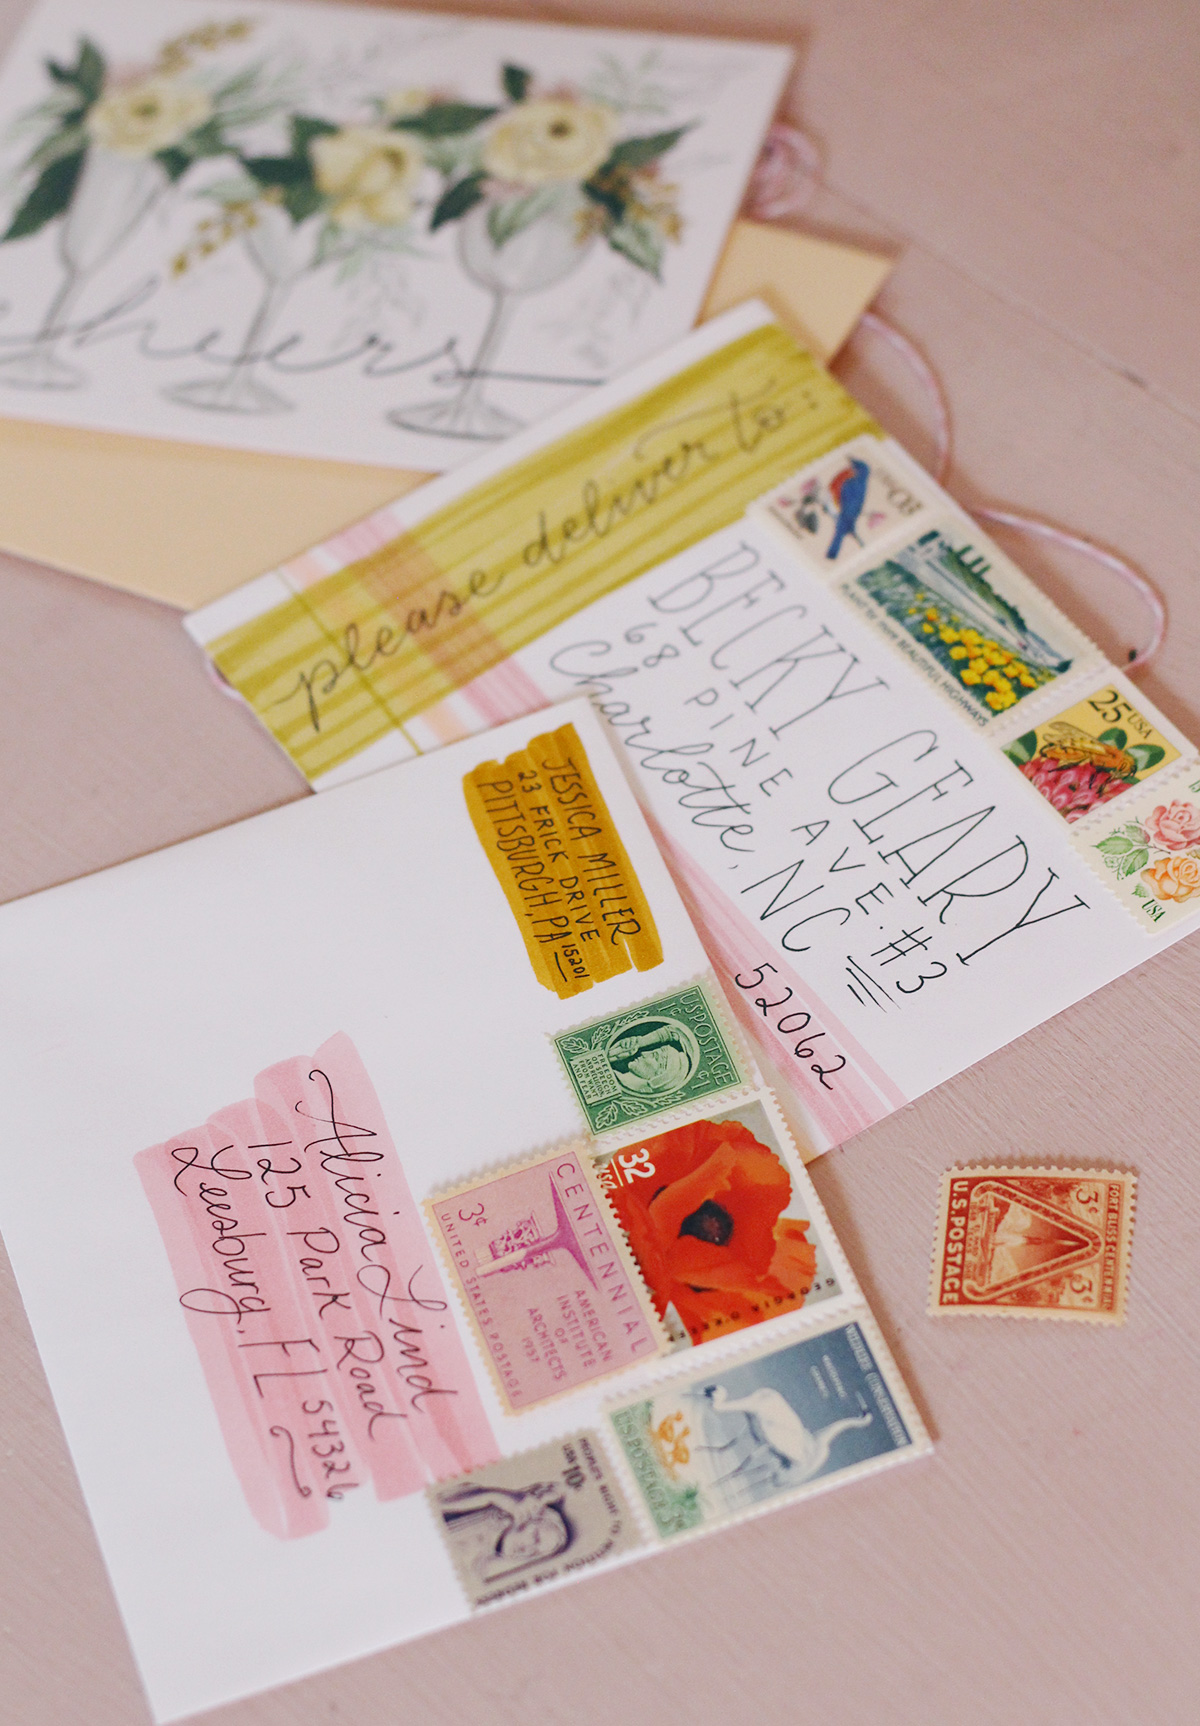 There is nothing quite like vintage stamps to elevate an envelope and really make someone smile when they receive your letter!